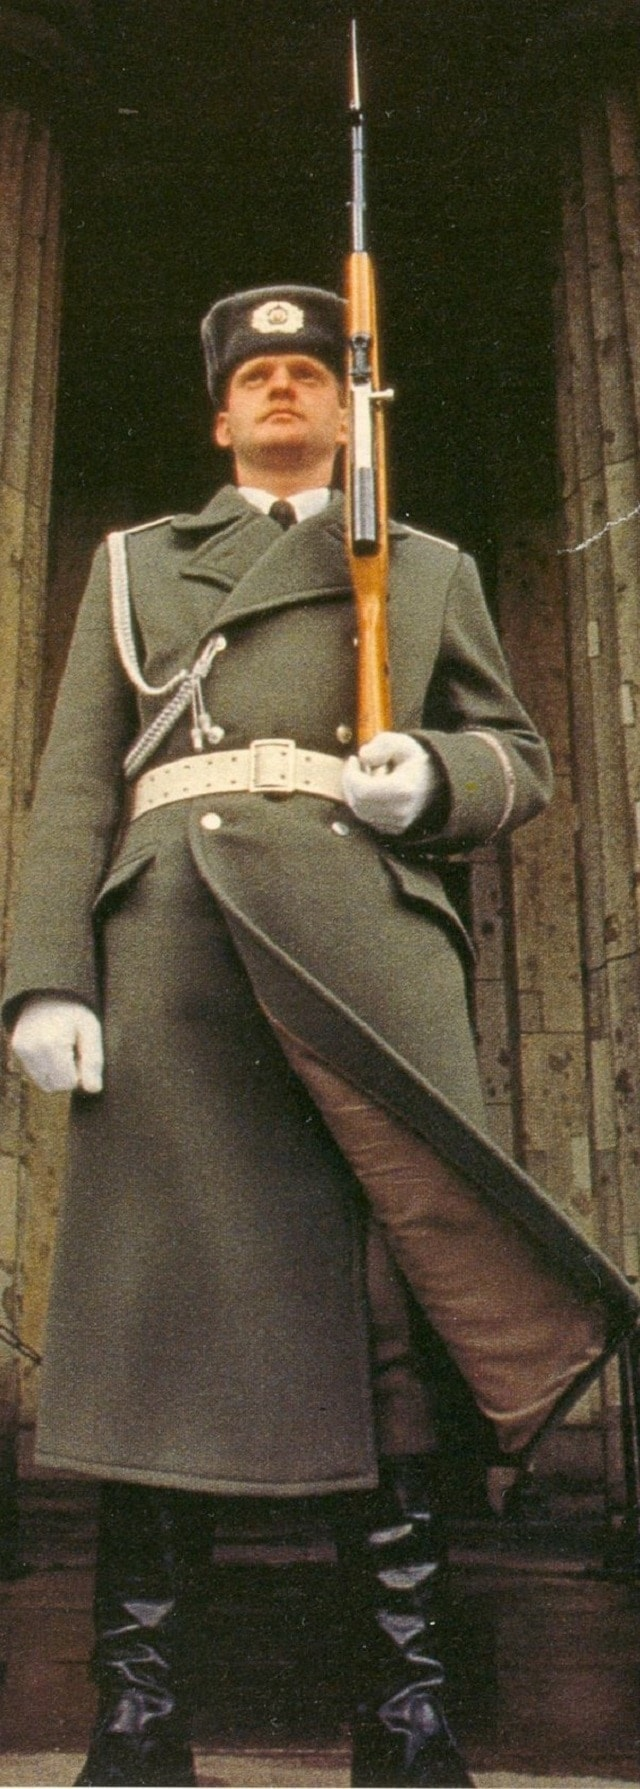 Soldiers in the DDR for a time carried thier own German-made SKSs, dubbed the Karabiner S, which this soldier of the Friedrich Engels Guard Regiment at the gate of the Neue Wache in East Berlin carries.